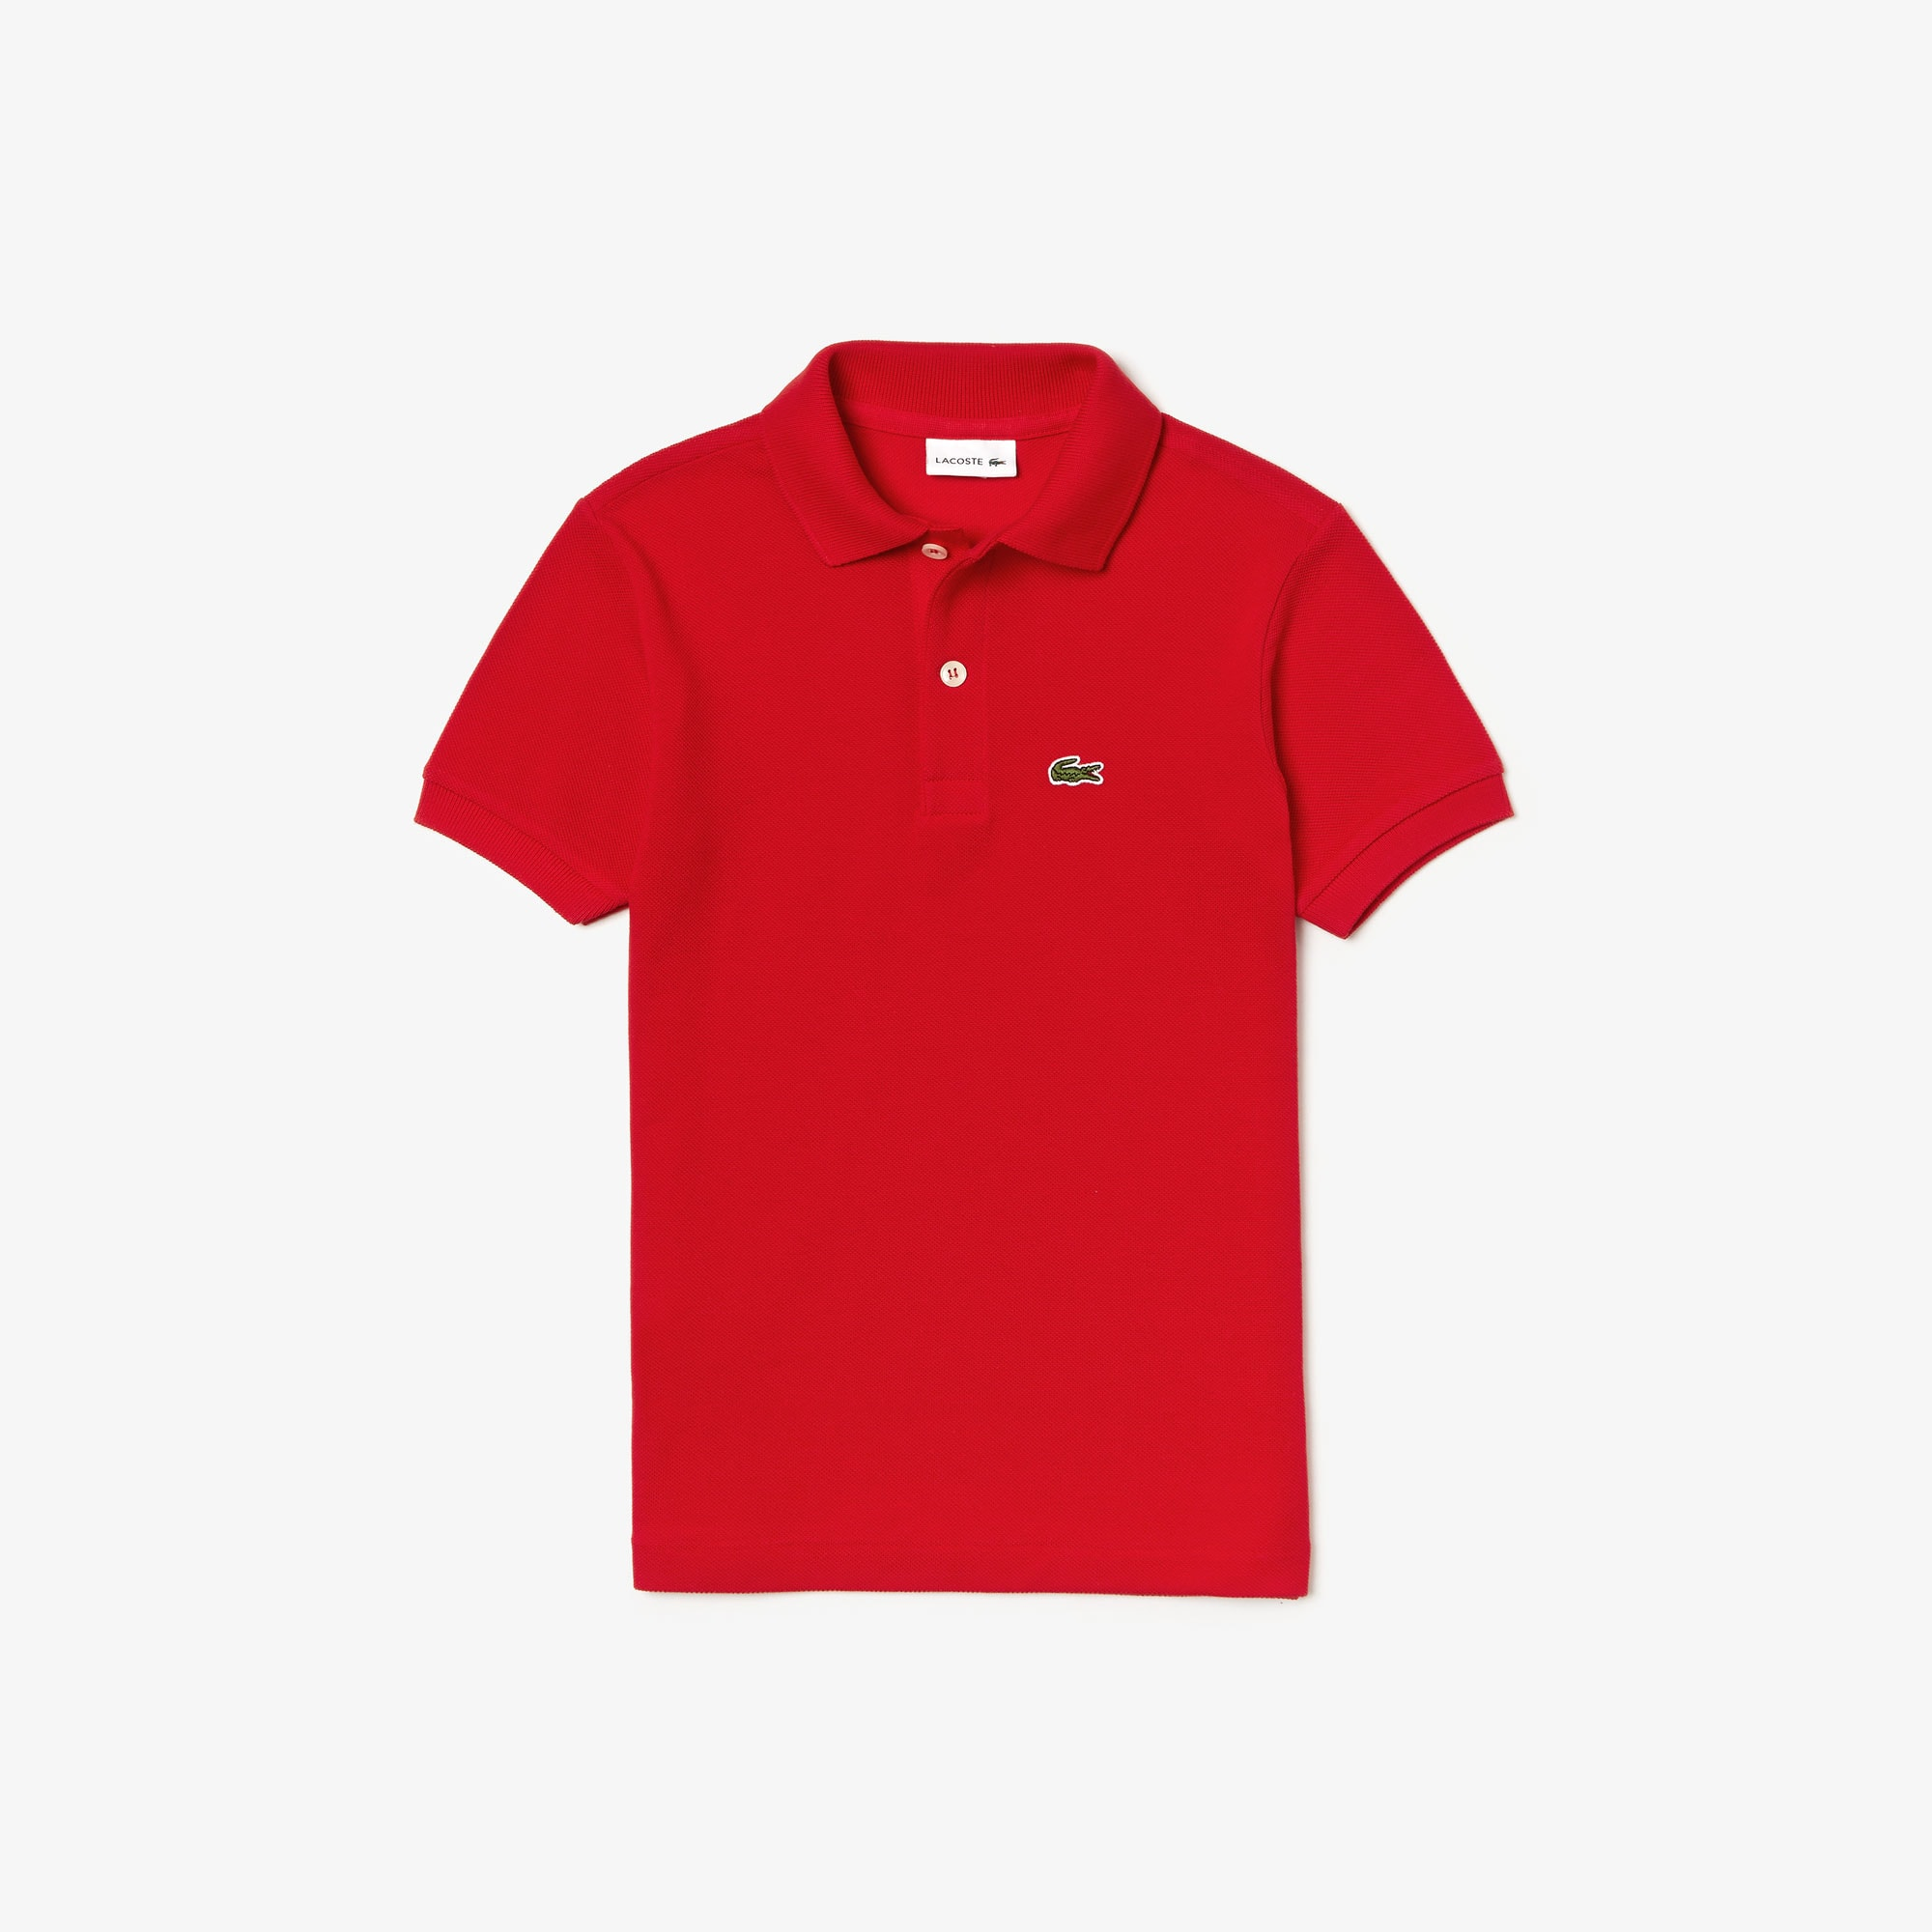 Clothing shoes collection kids fashion lacoste for Boys lacoste polo shirt